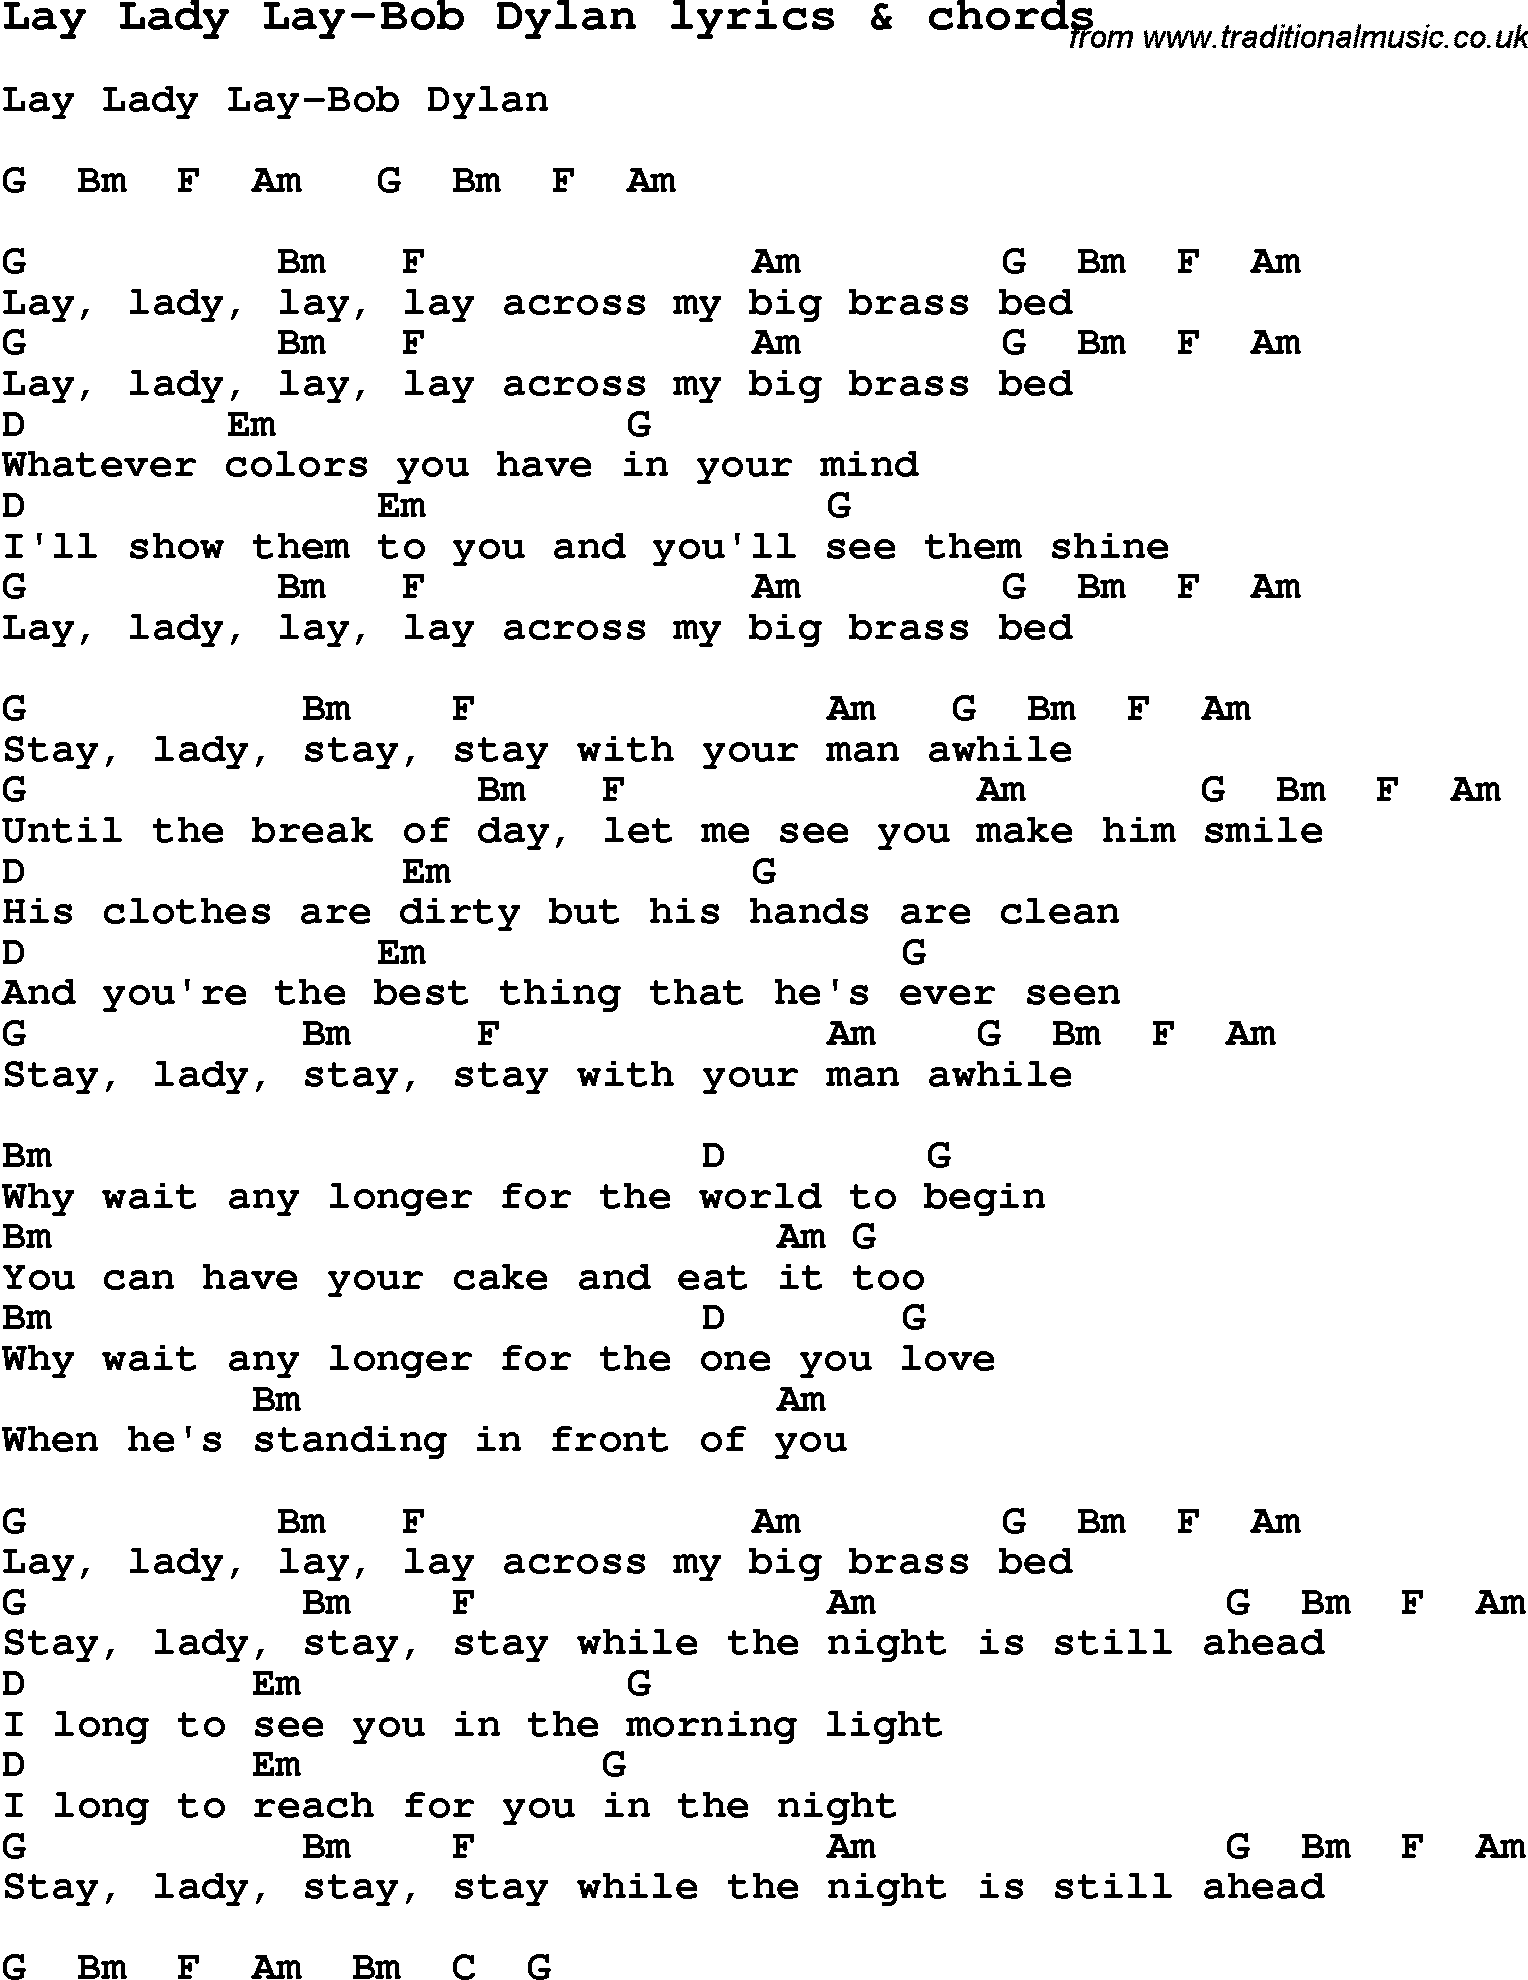 The wedding song guitar chords